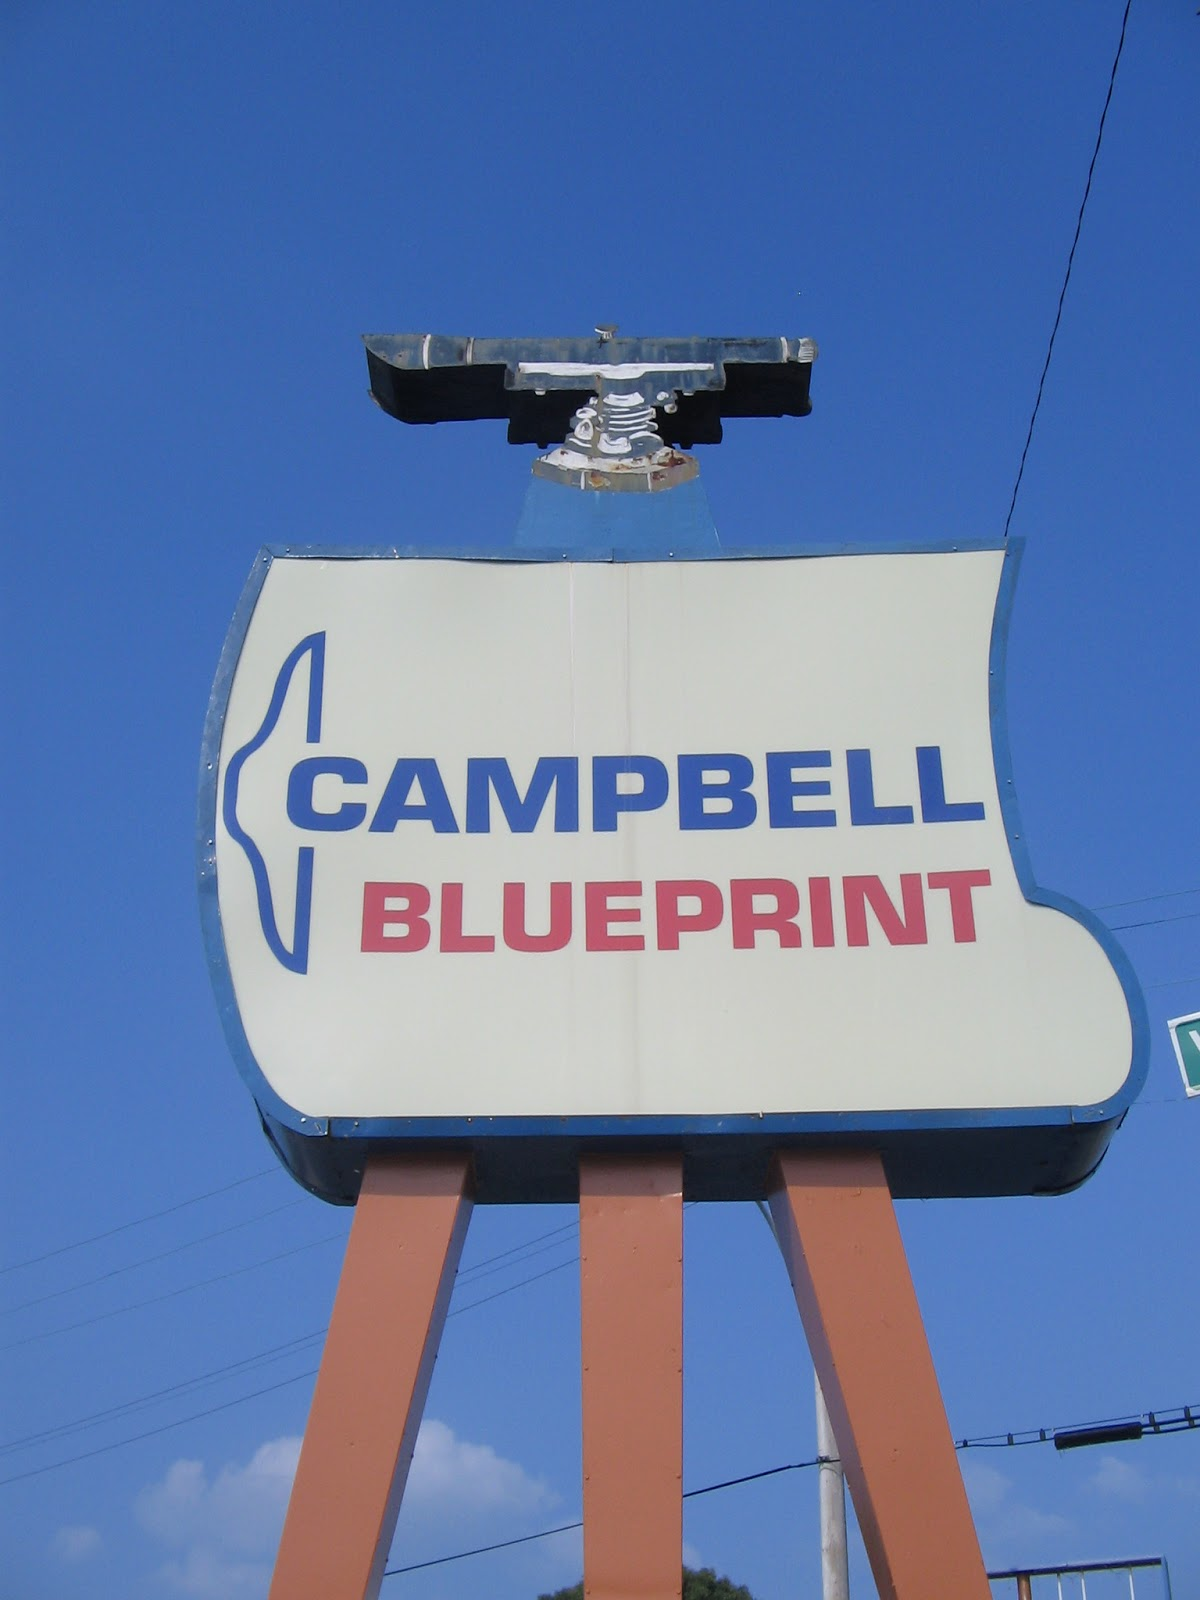 Crme de memph january 2017 campbell blueprint now known as campbell surveying co was formerly on broad ave with this sign that clearly indicated its two specialities malvernweather Images